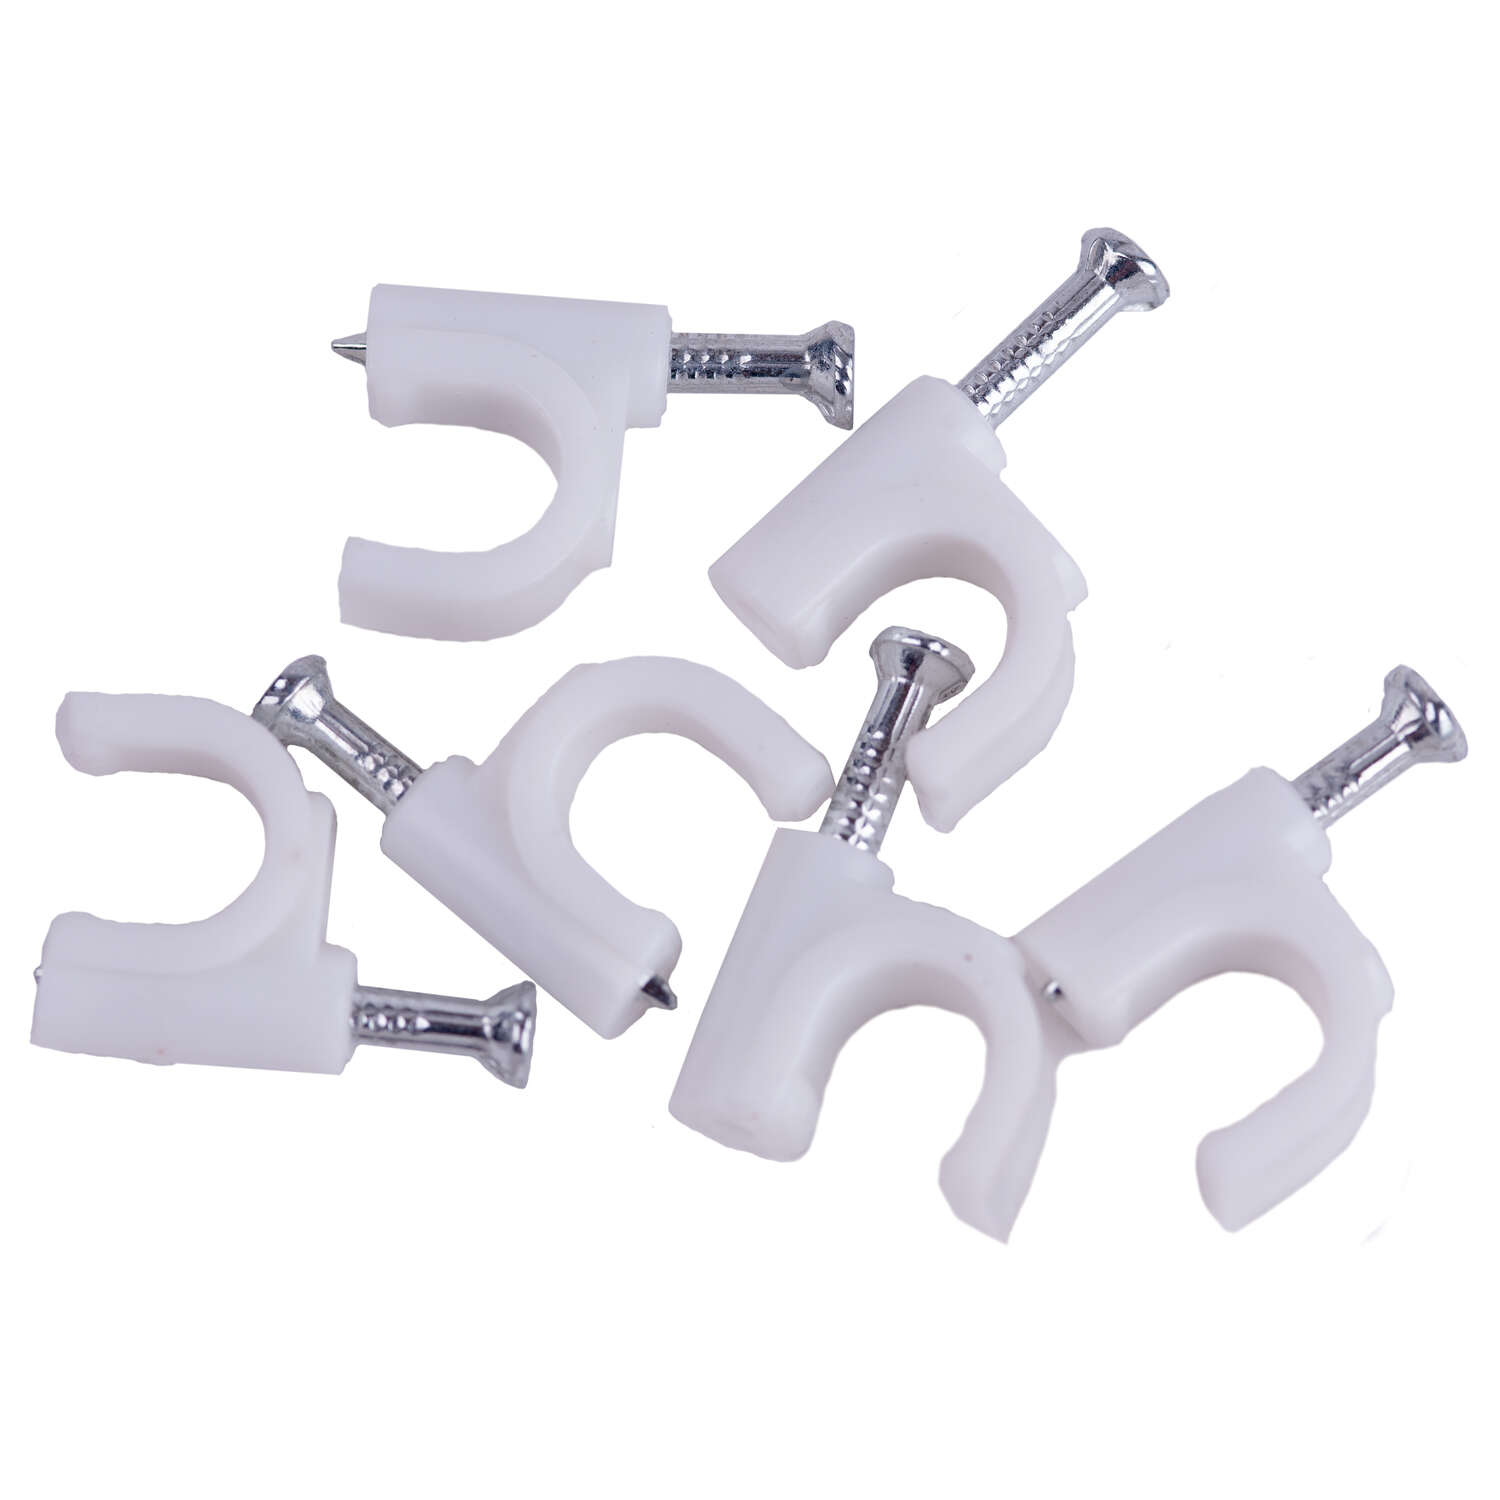 Monster Cable  Cable  RG6  Coaxial Cable Clips  6 pk